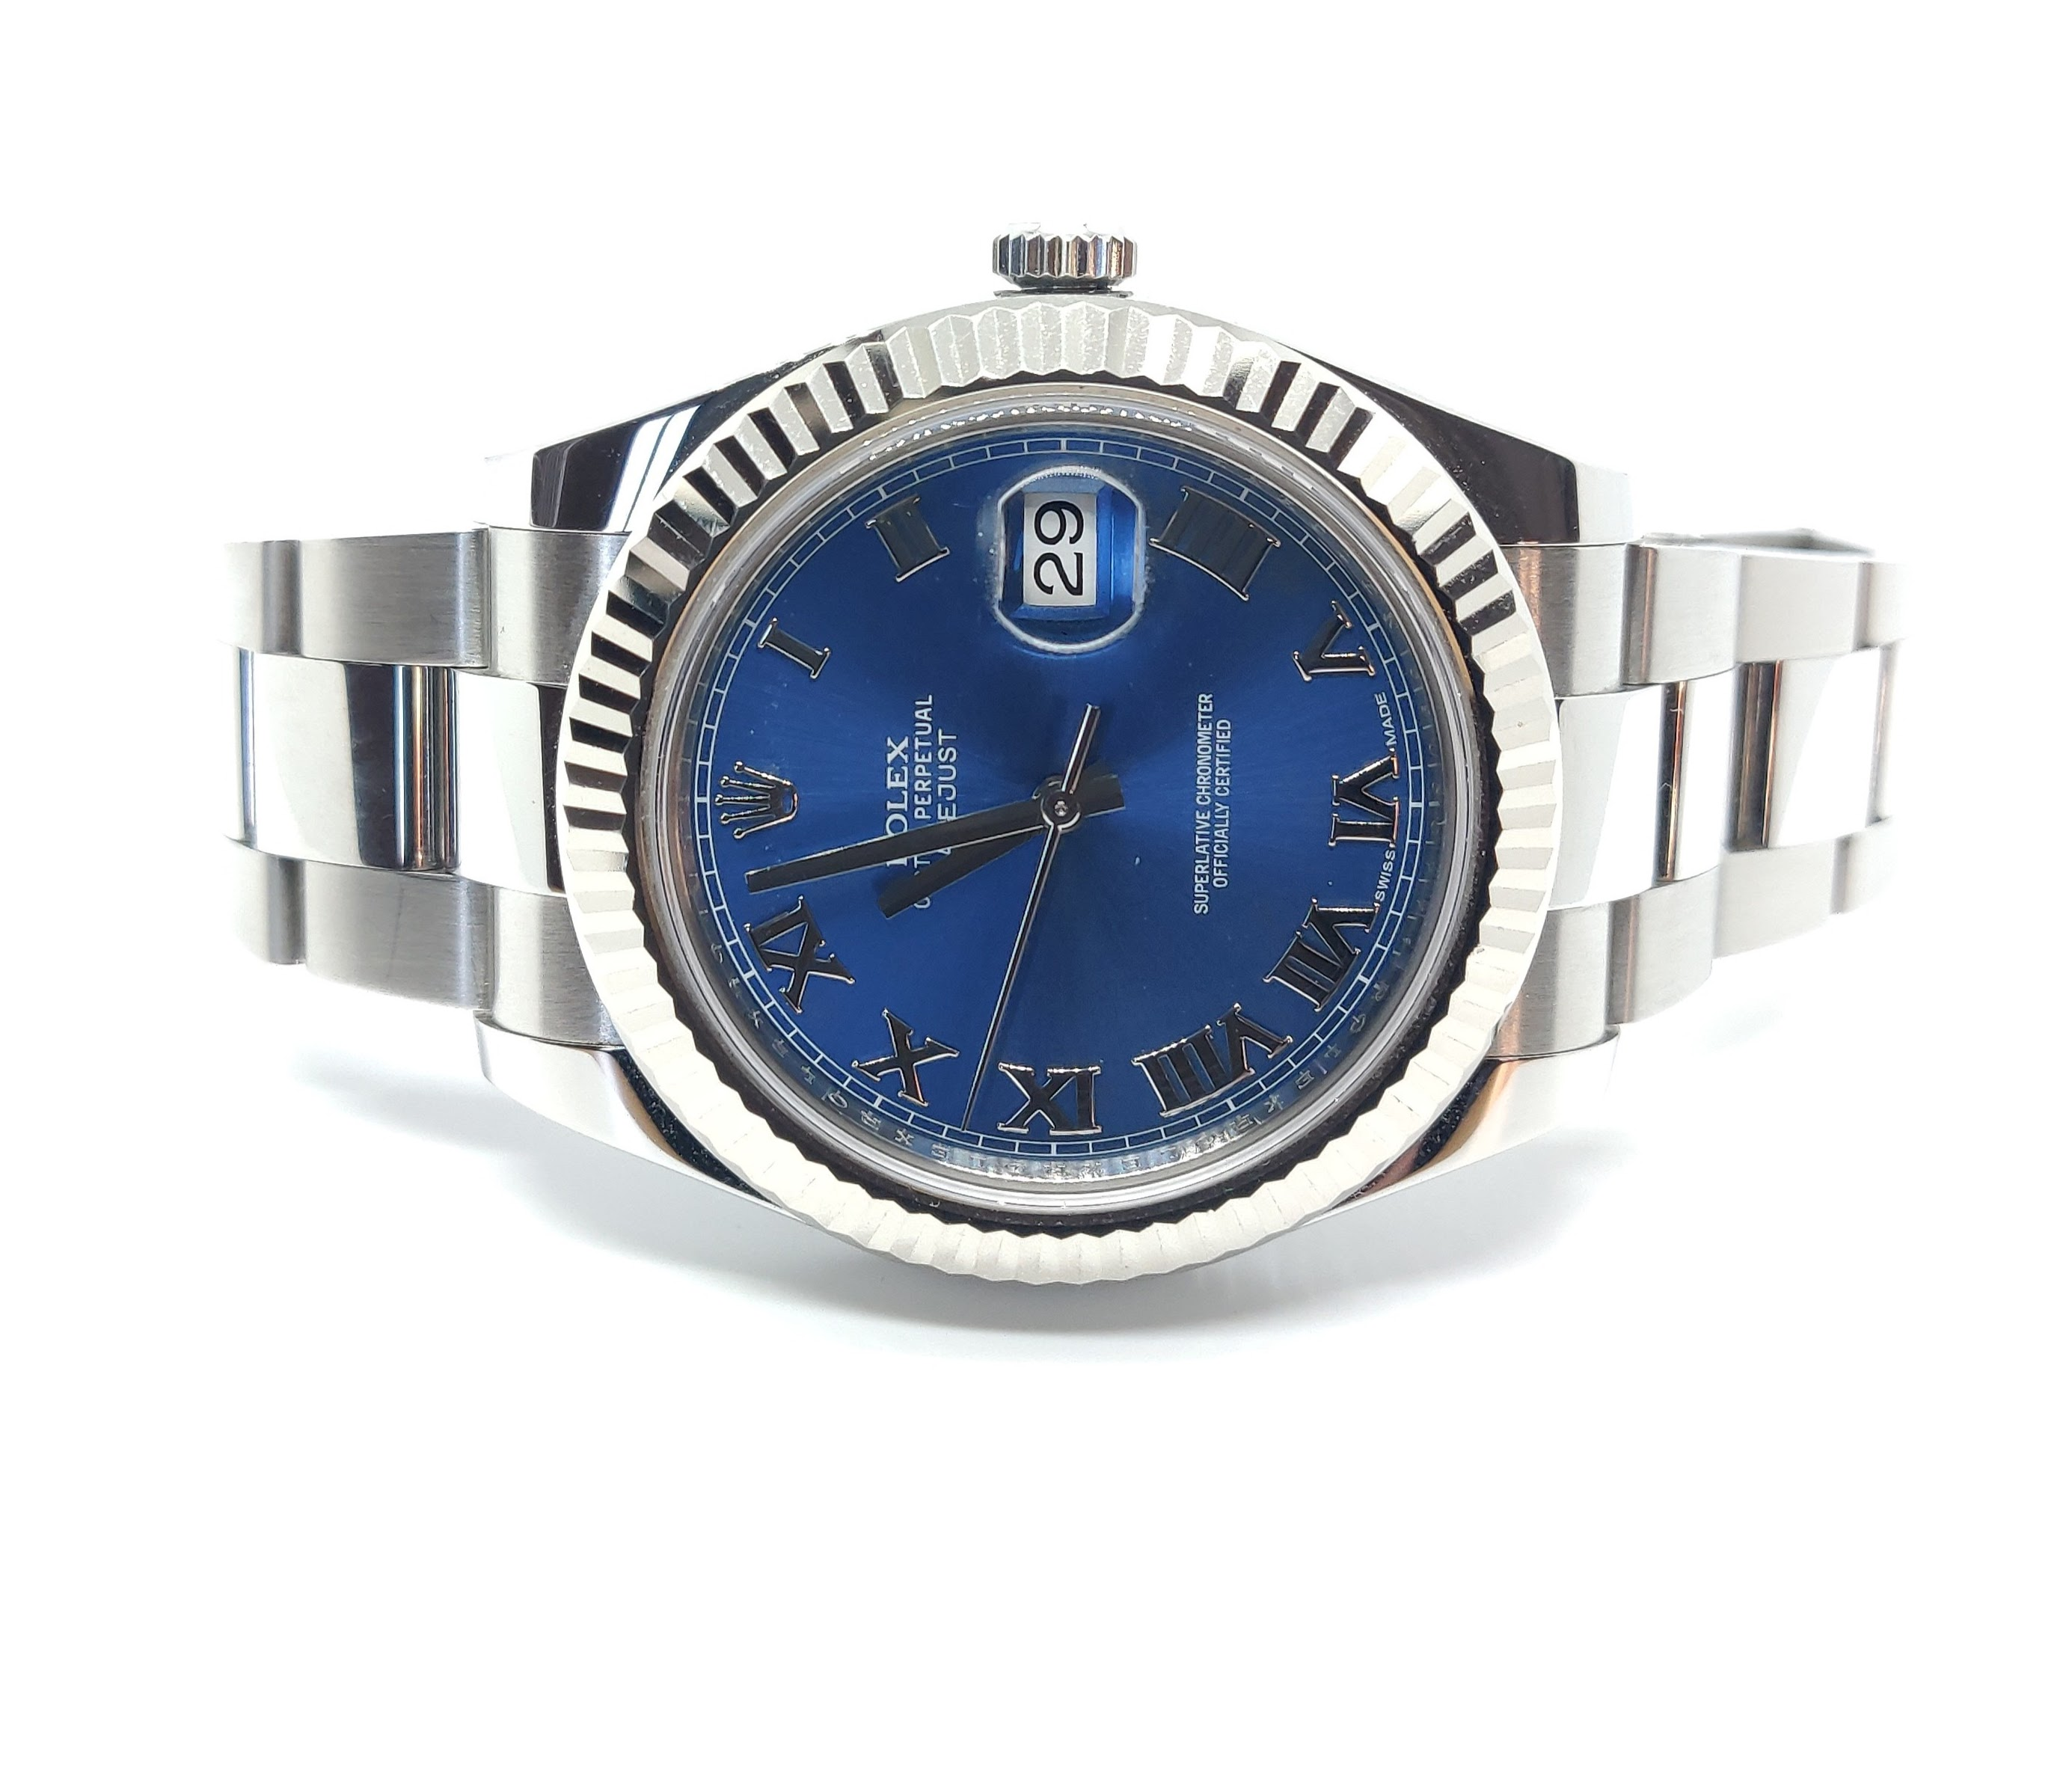 Rolex Datejust II with Blue Dial and Roman Numerals – 116334